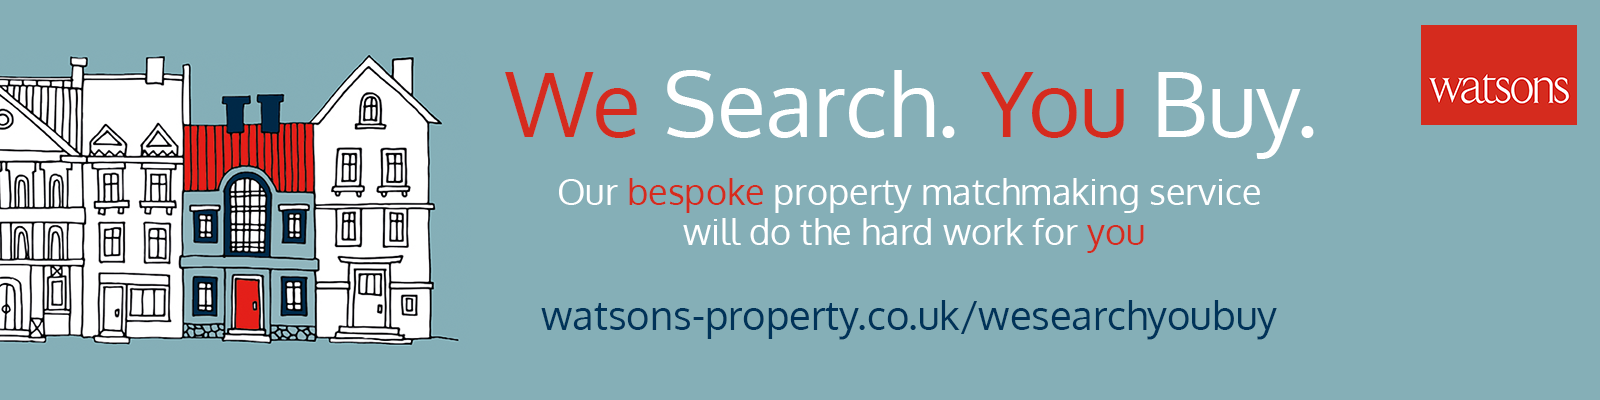 Property Matchmaking Campaign 2019